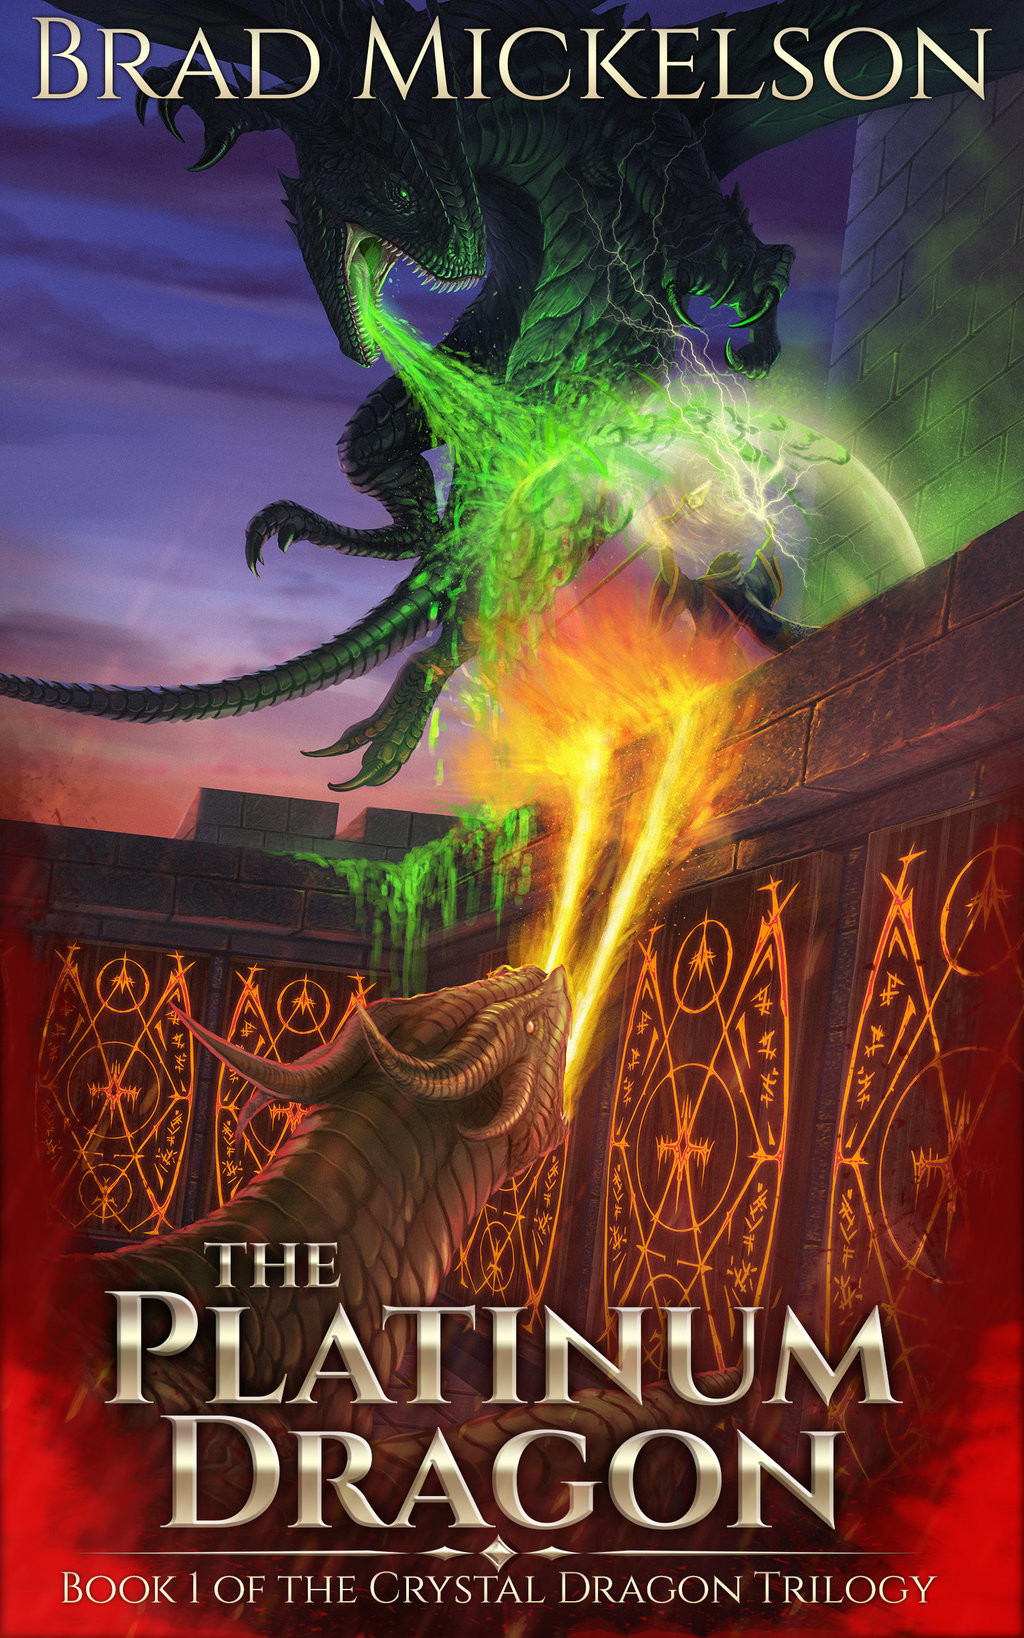 Robert crescenzio the platinum dragon book cover by robertcrescenzio dcq28vt